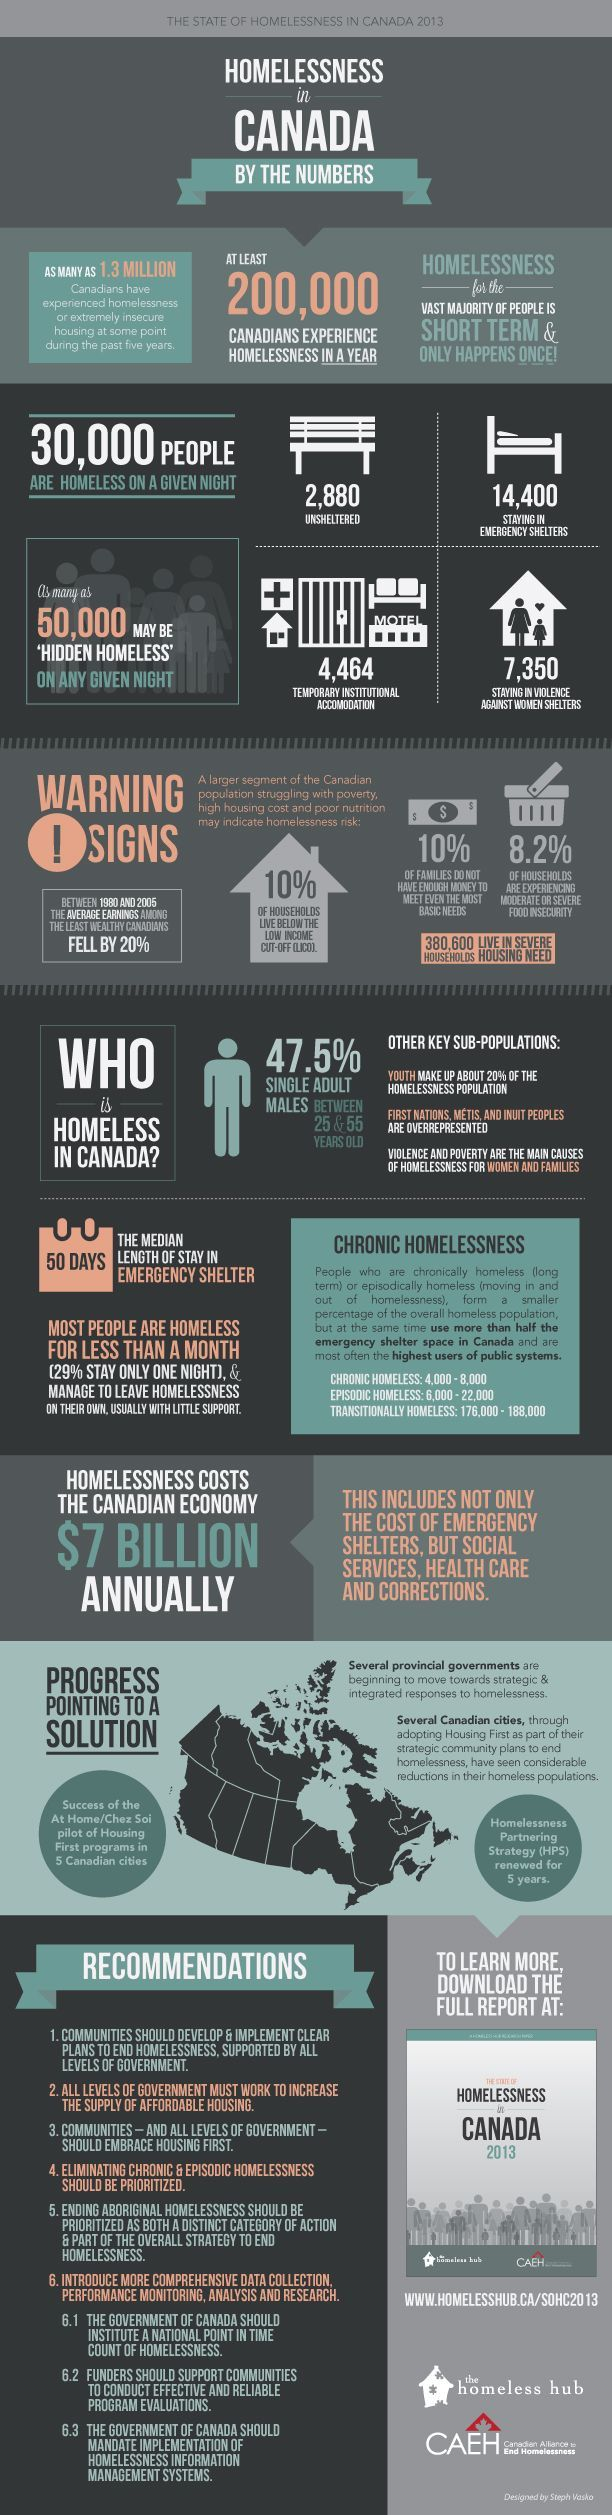 The State of Homelessness in Canada 2013 | The Homeless Hub